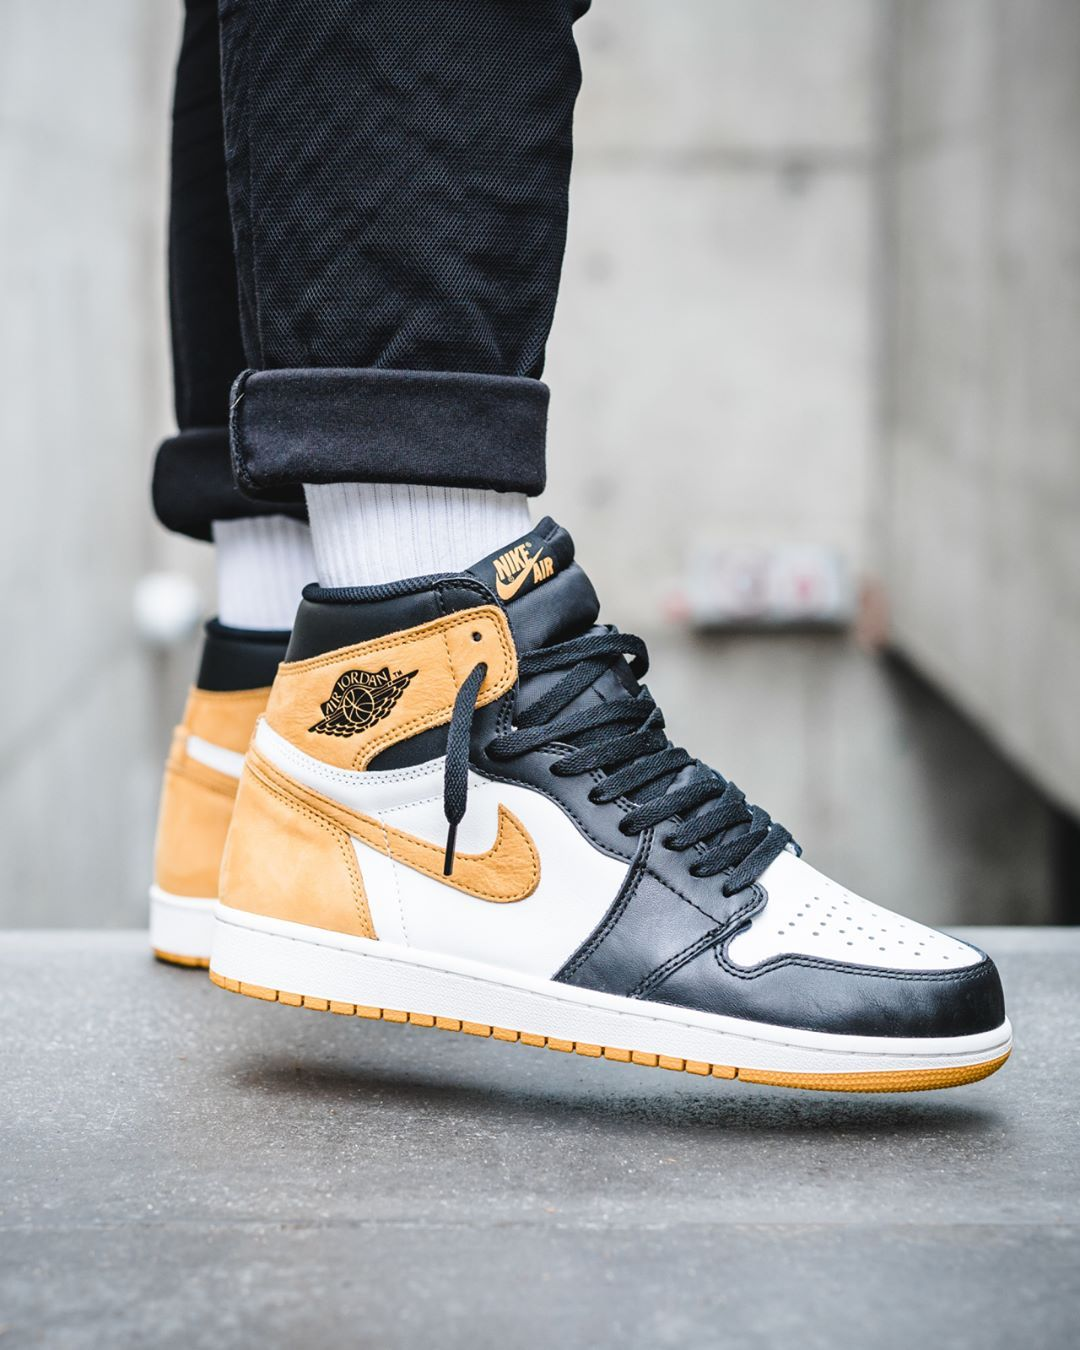 Air Jordan 1 Best Hand in the Game Pack